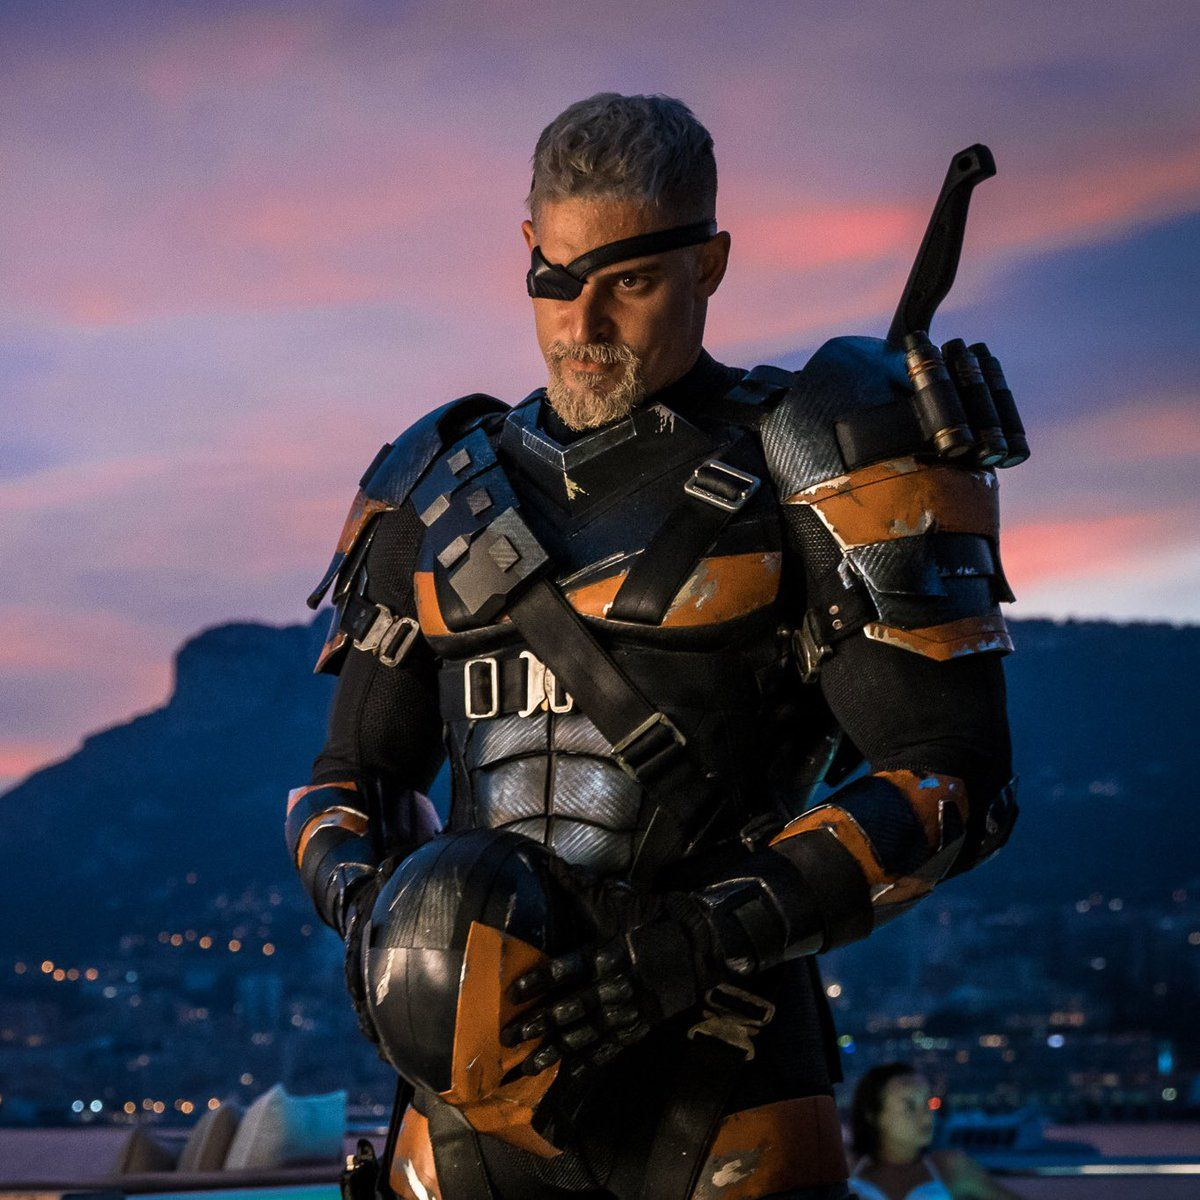 Joe Manganiello Shares New Deathstroke Image on Twitter